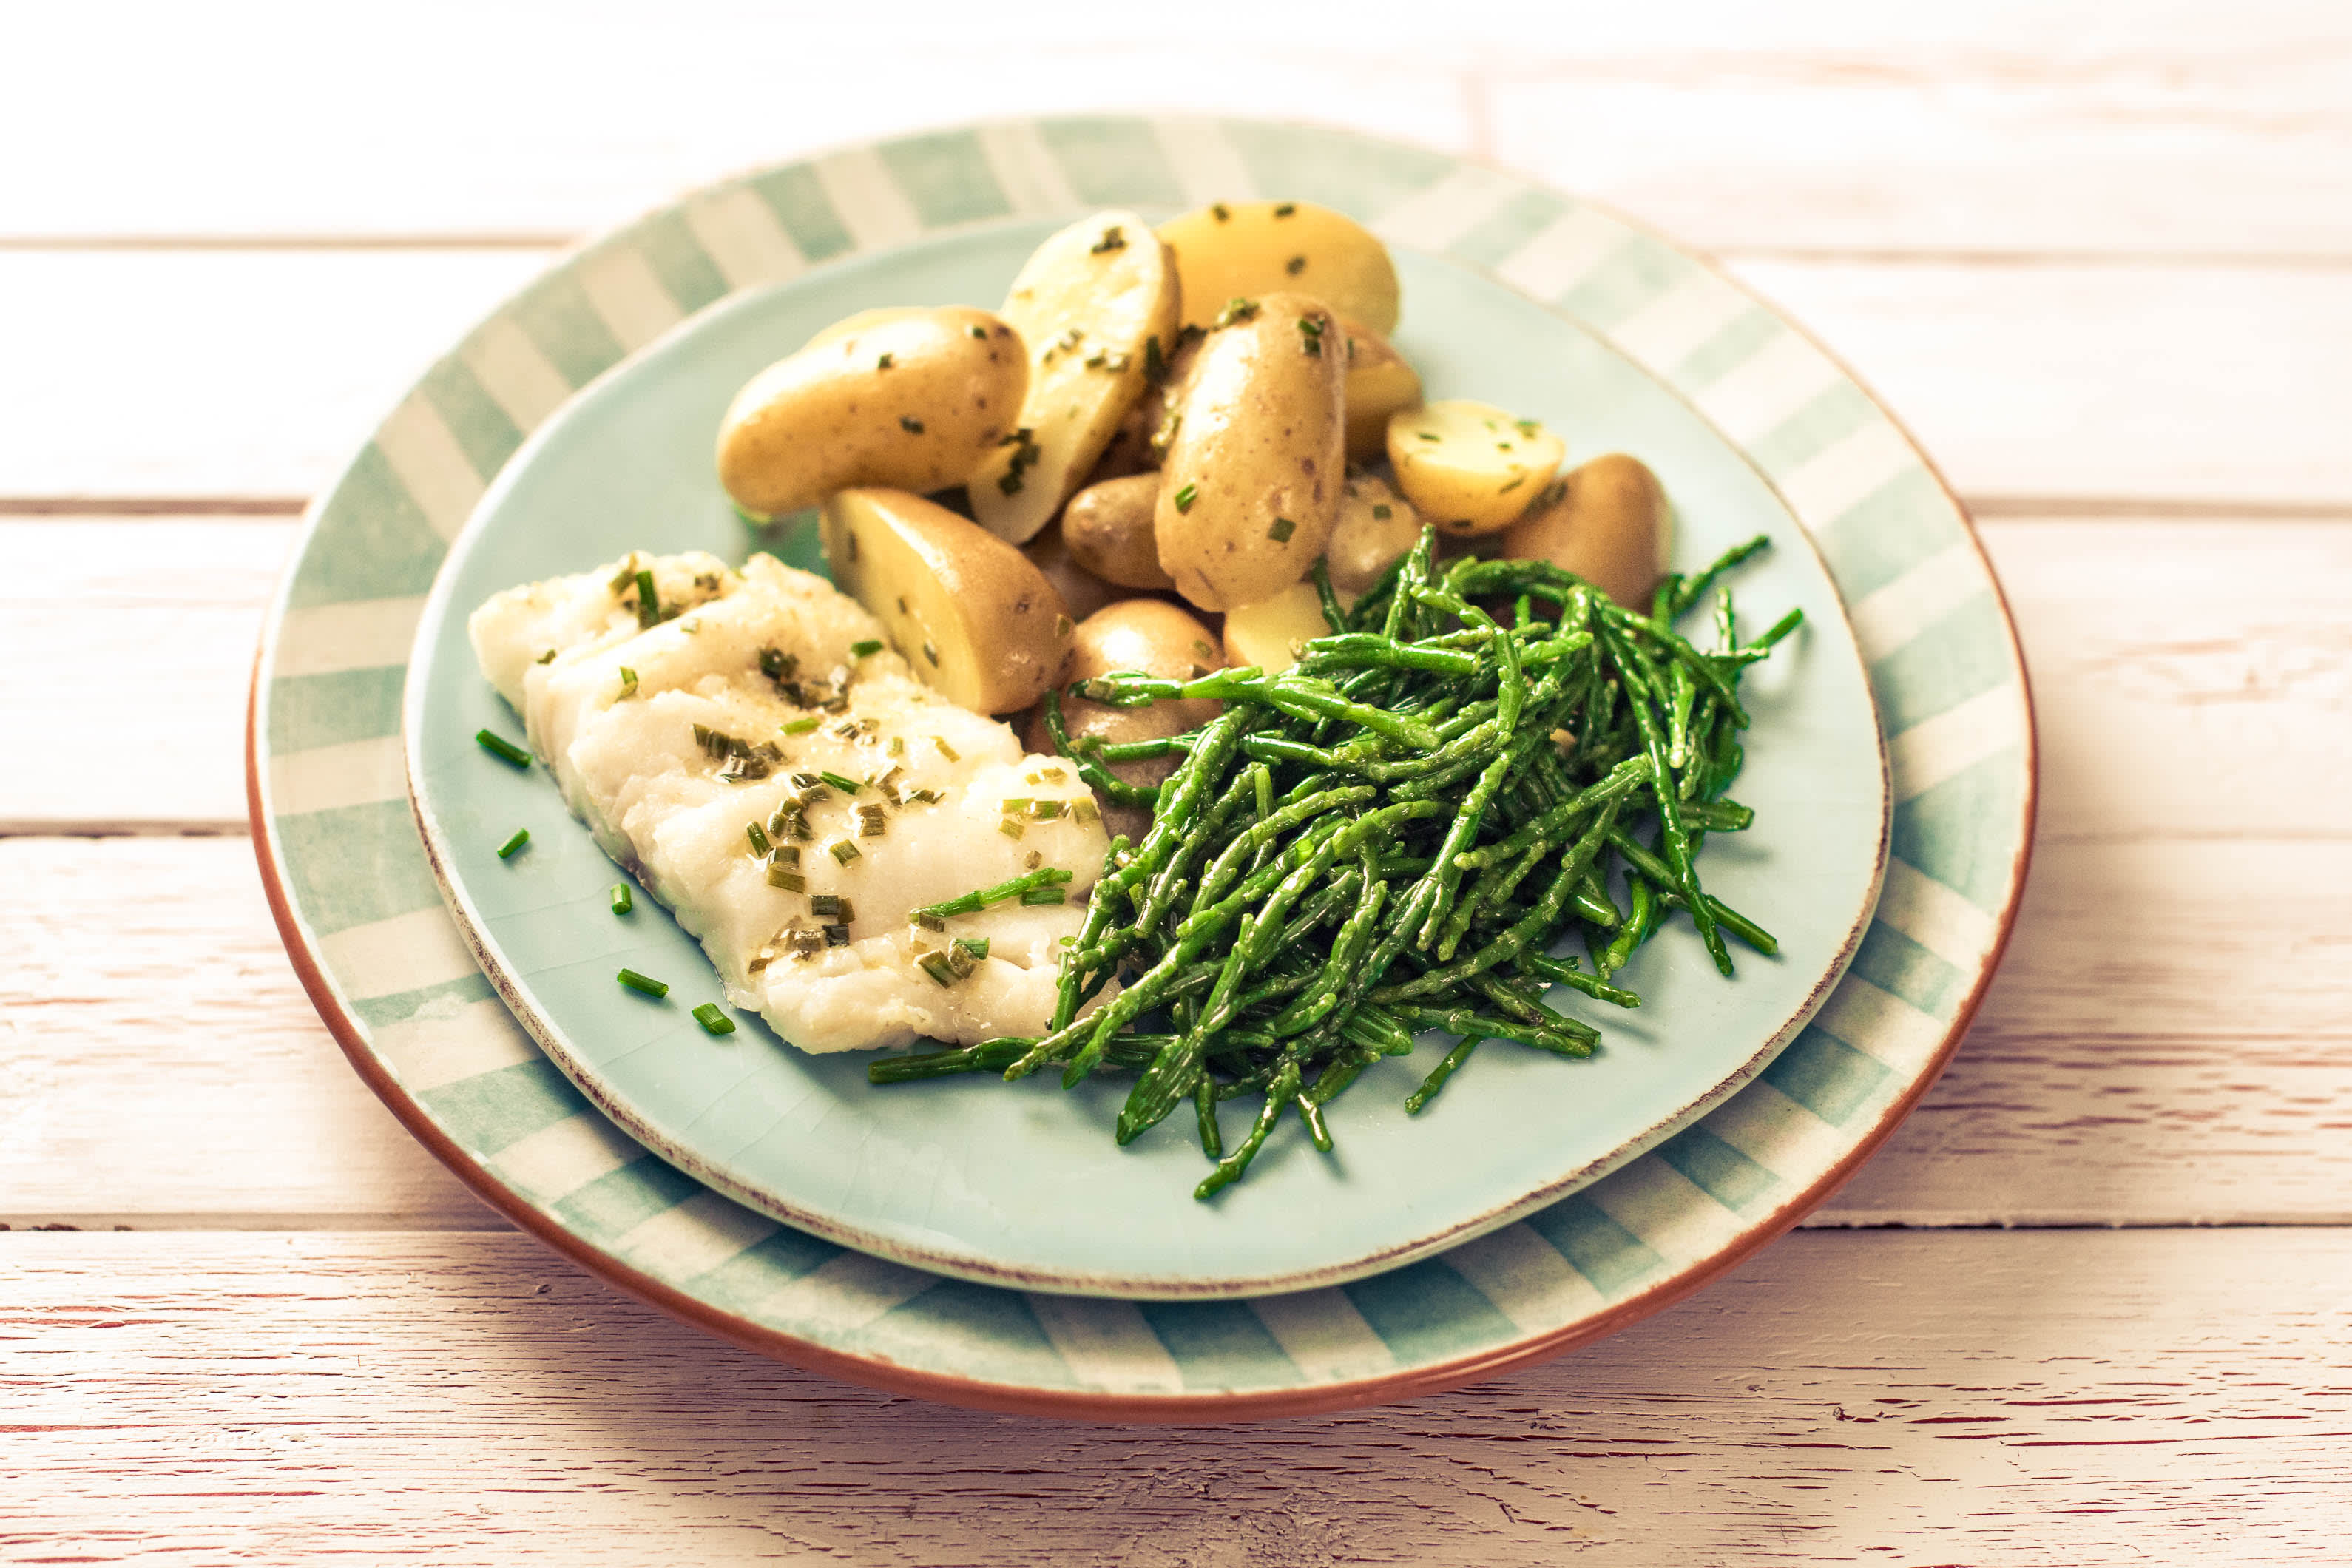 Tasteology Grilled Haddock and Samphire